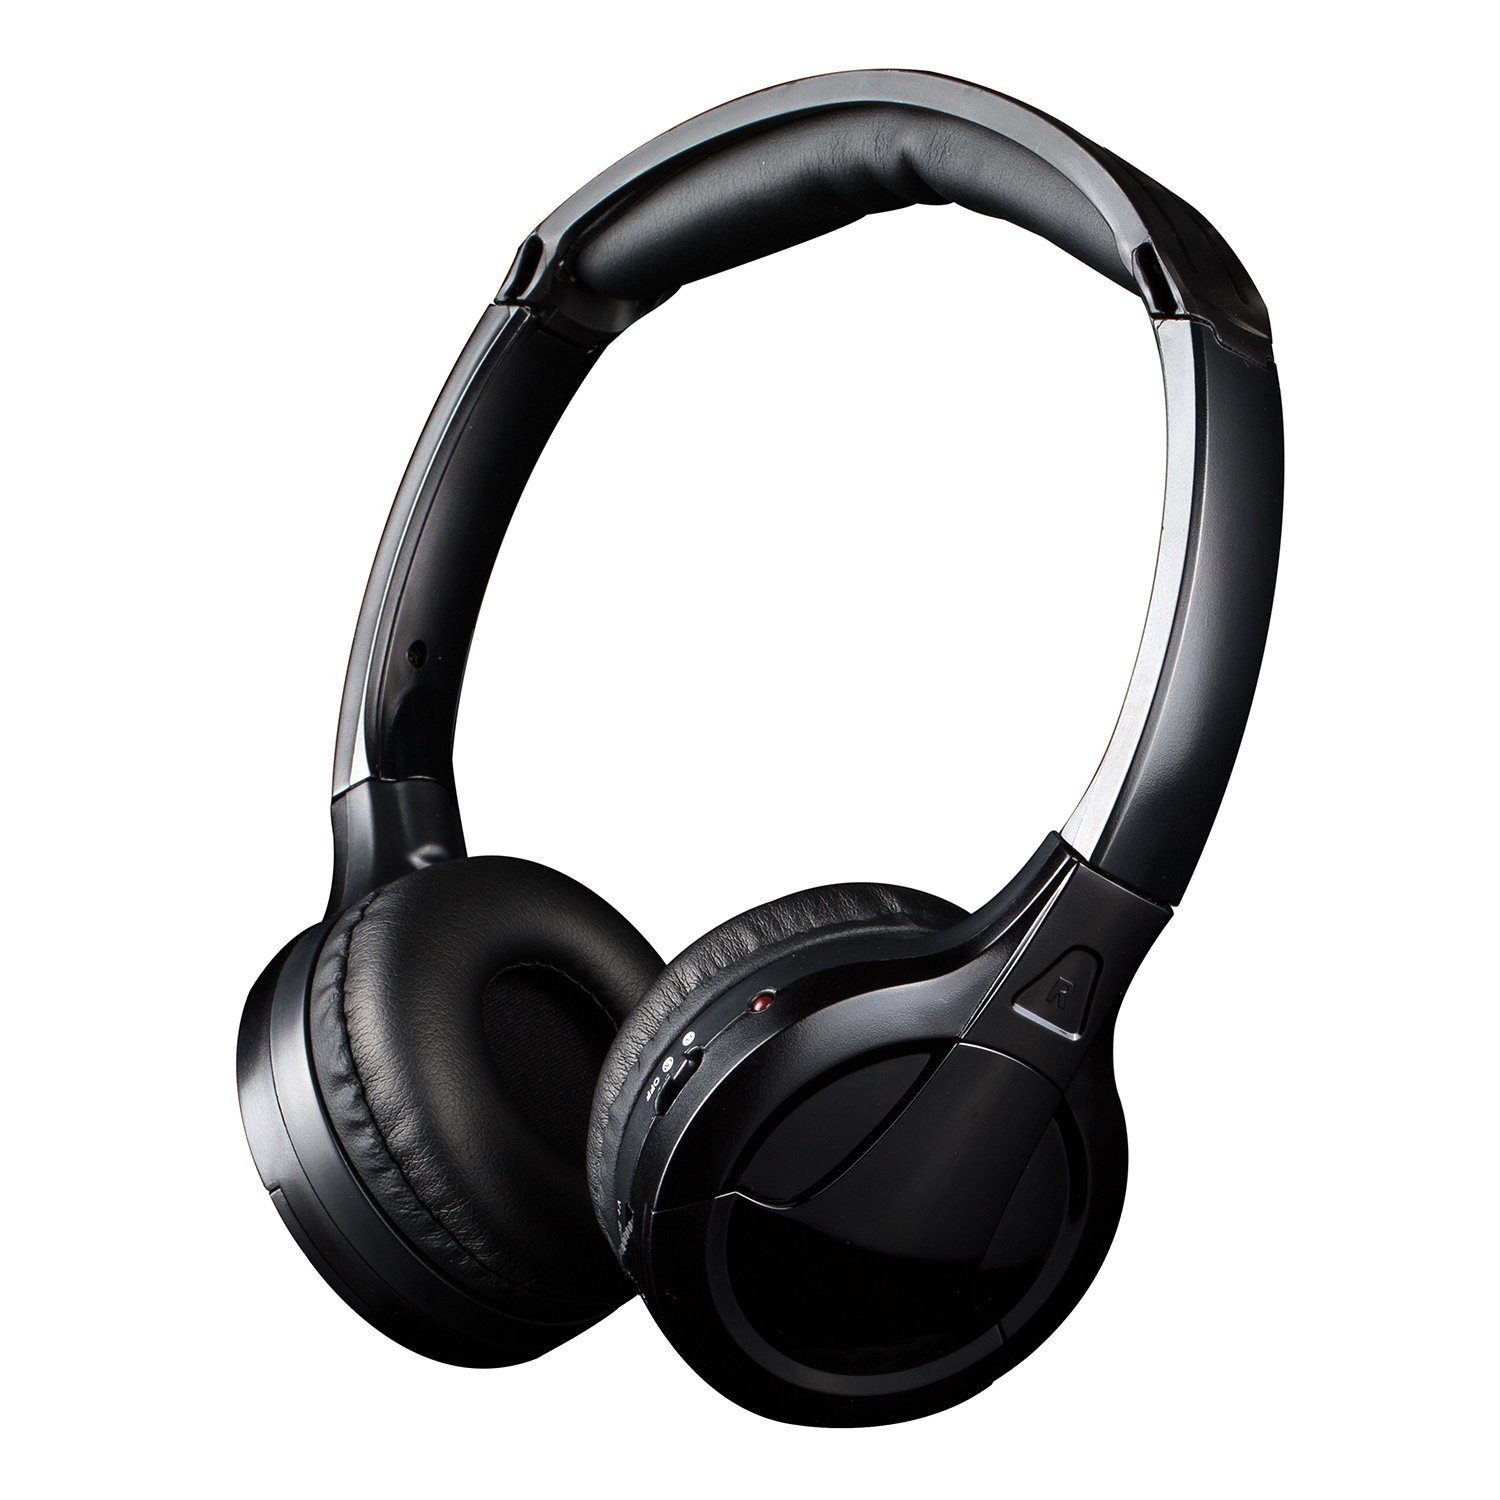 94aa93a8b43 Wireless TV Headphones [No Latency], Jelly Comb Wireless RF Stereo  [Rechargeable] Headphones Headset Earphone with 3.5mm Audio-out Jack for  TV, Cell Phone, ...